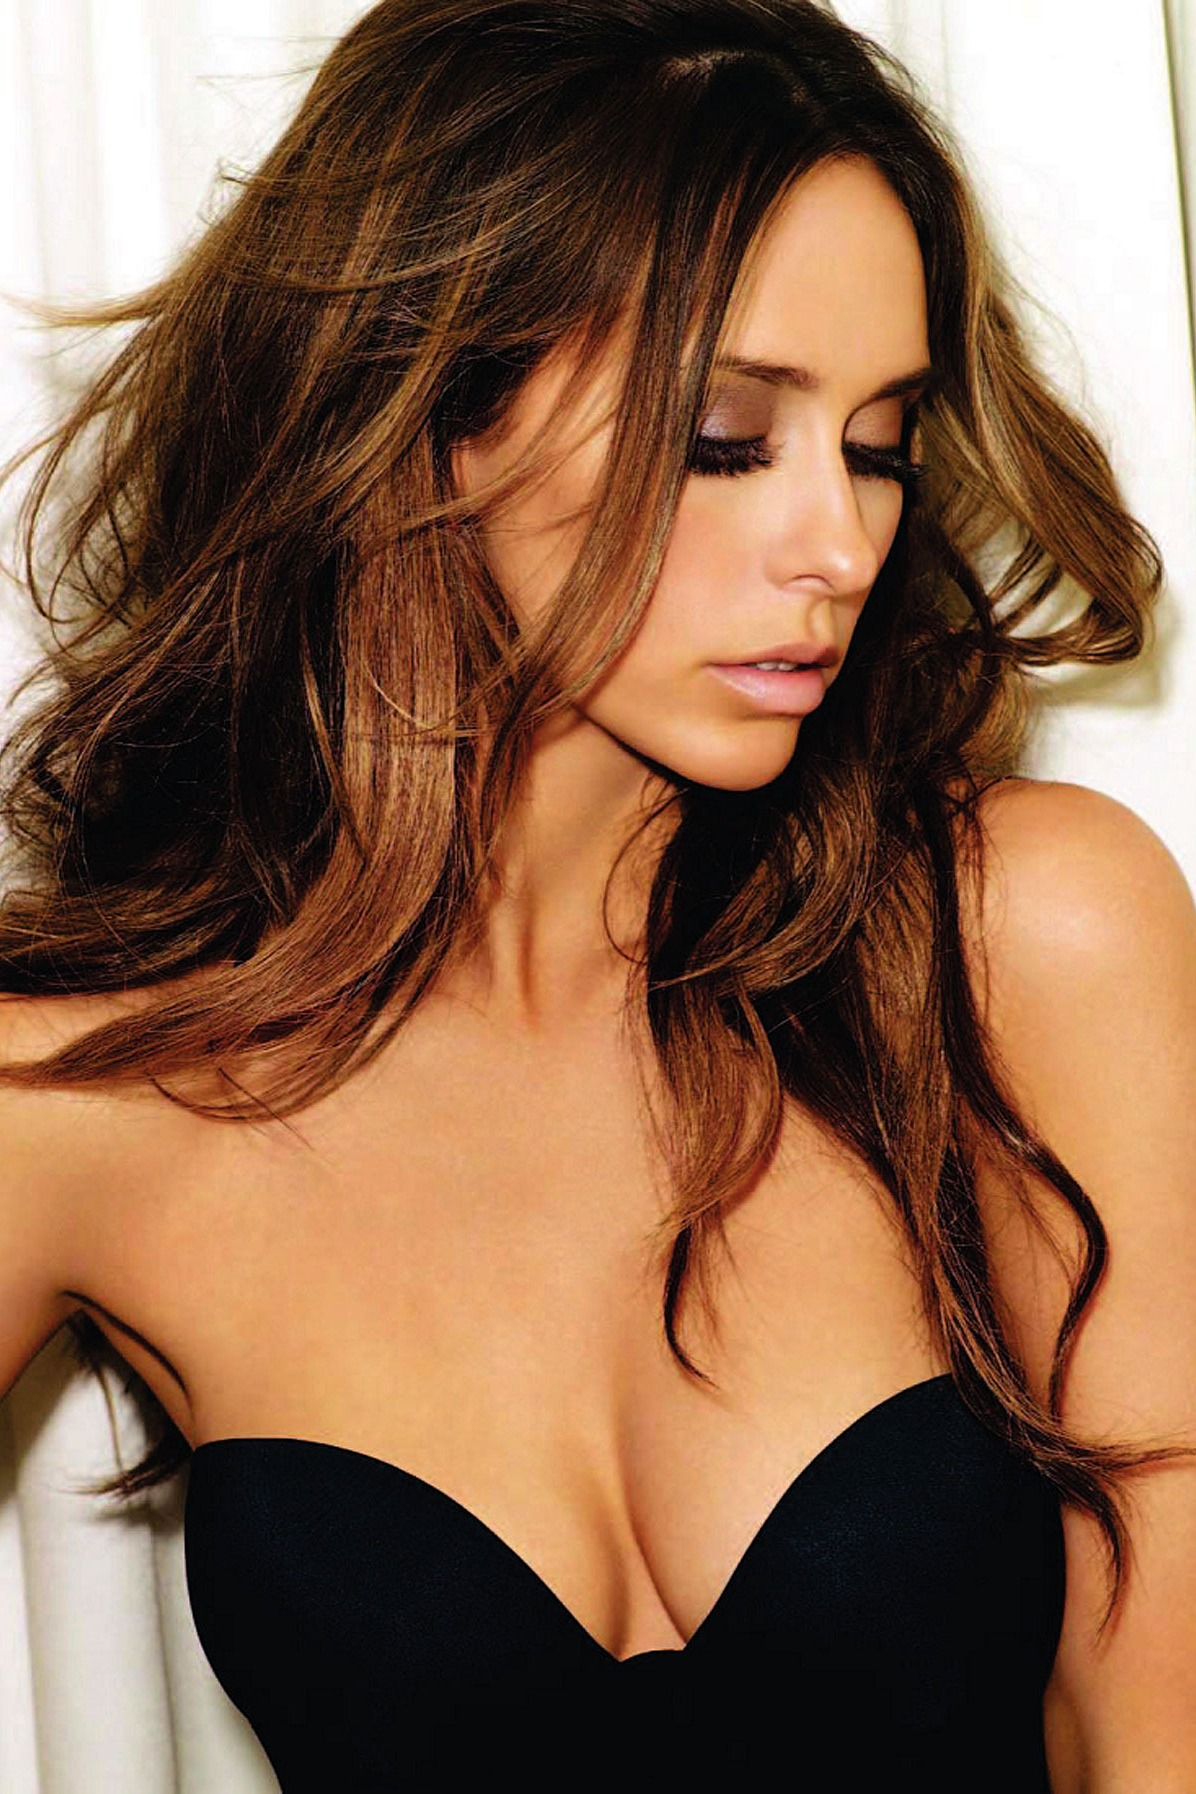 Jennifer love hewitt sexy photos